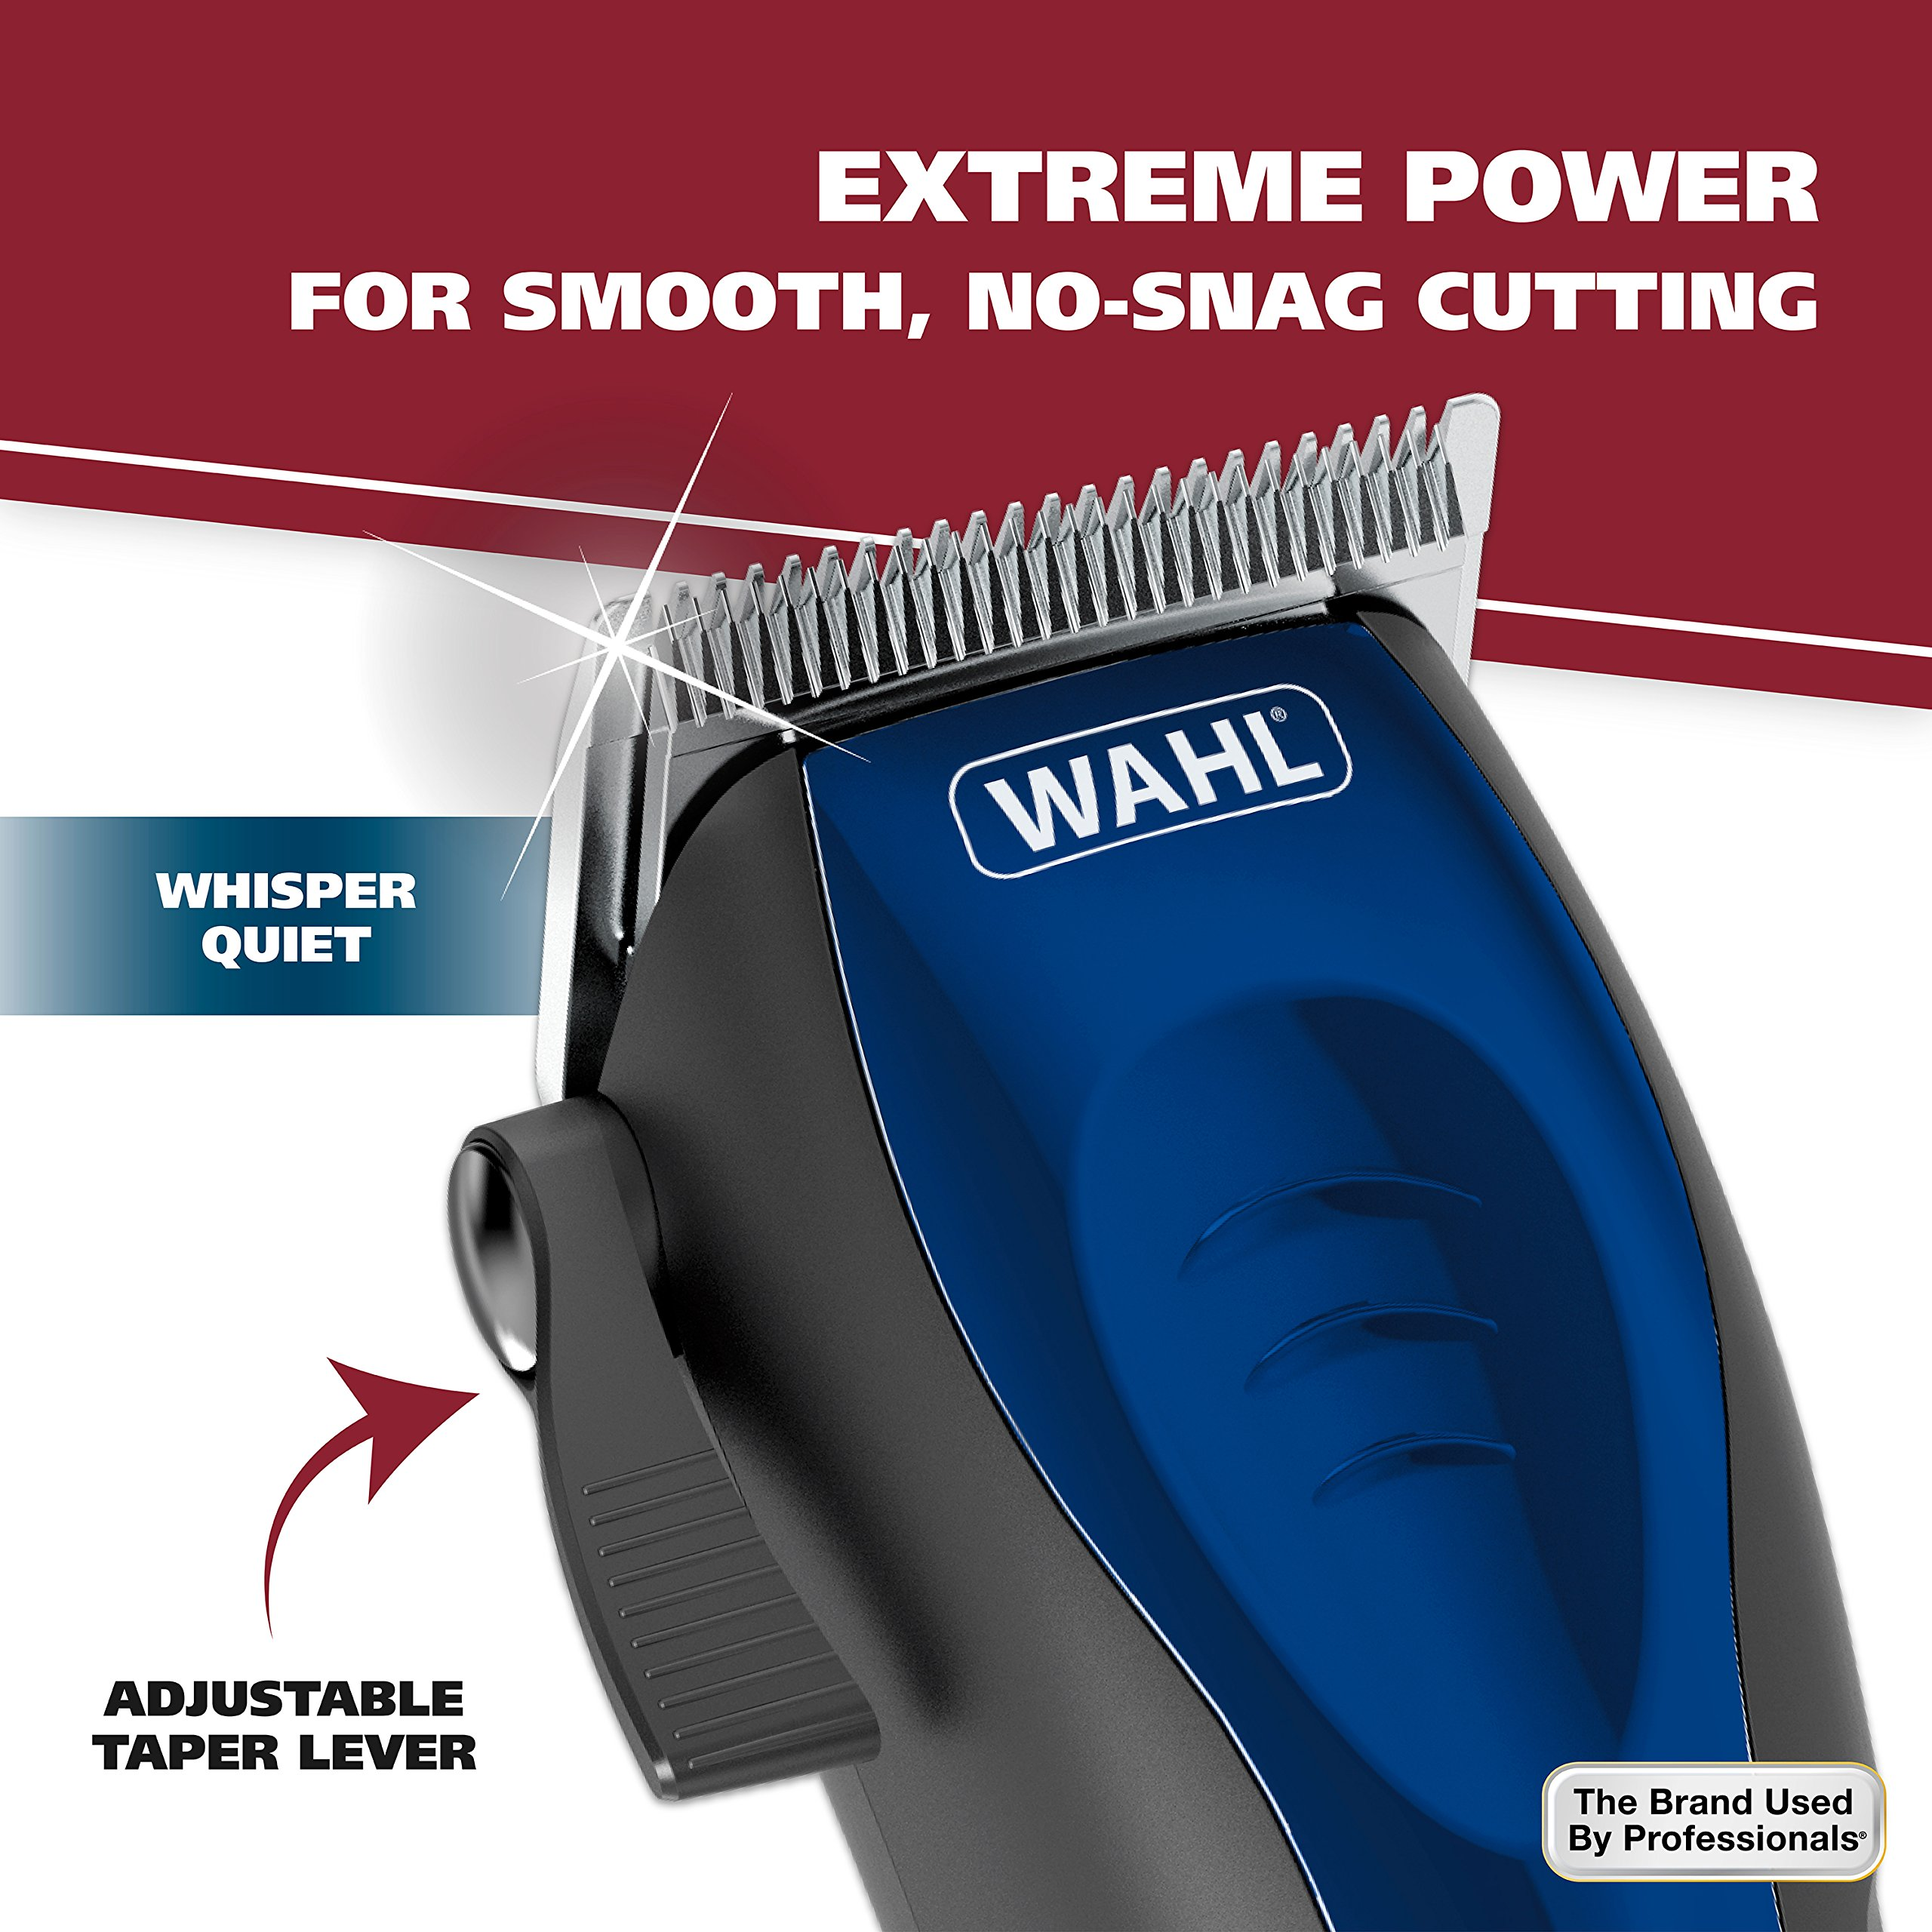 Wahl Clipper Self-Cut Haircutting Kit 79467 Compact Trimming and Personal Grooming Kit by WAHL (Image #5)